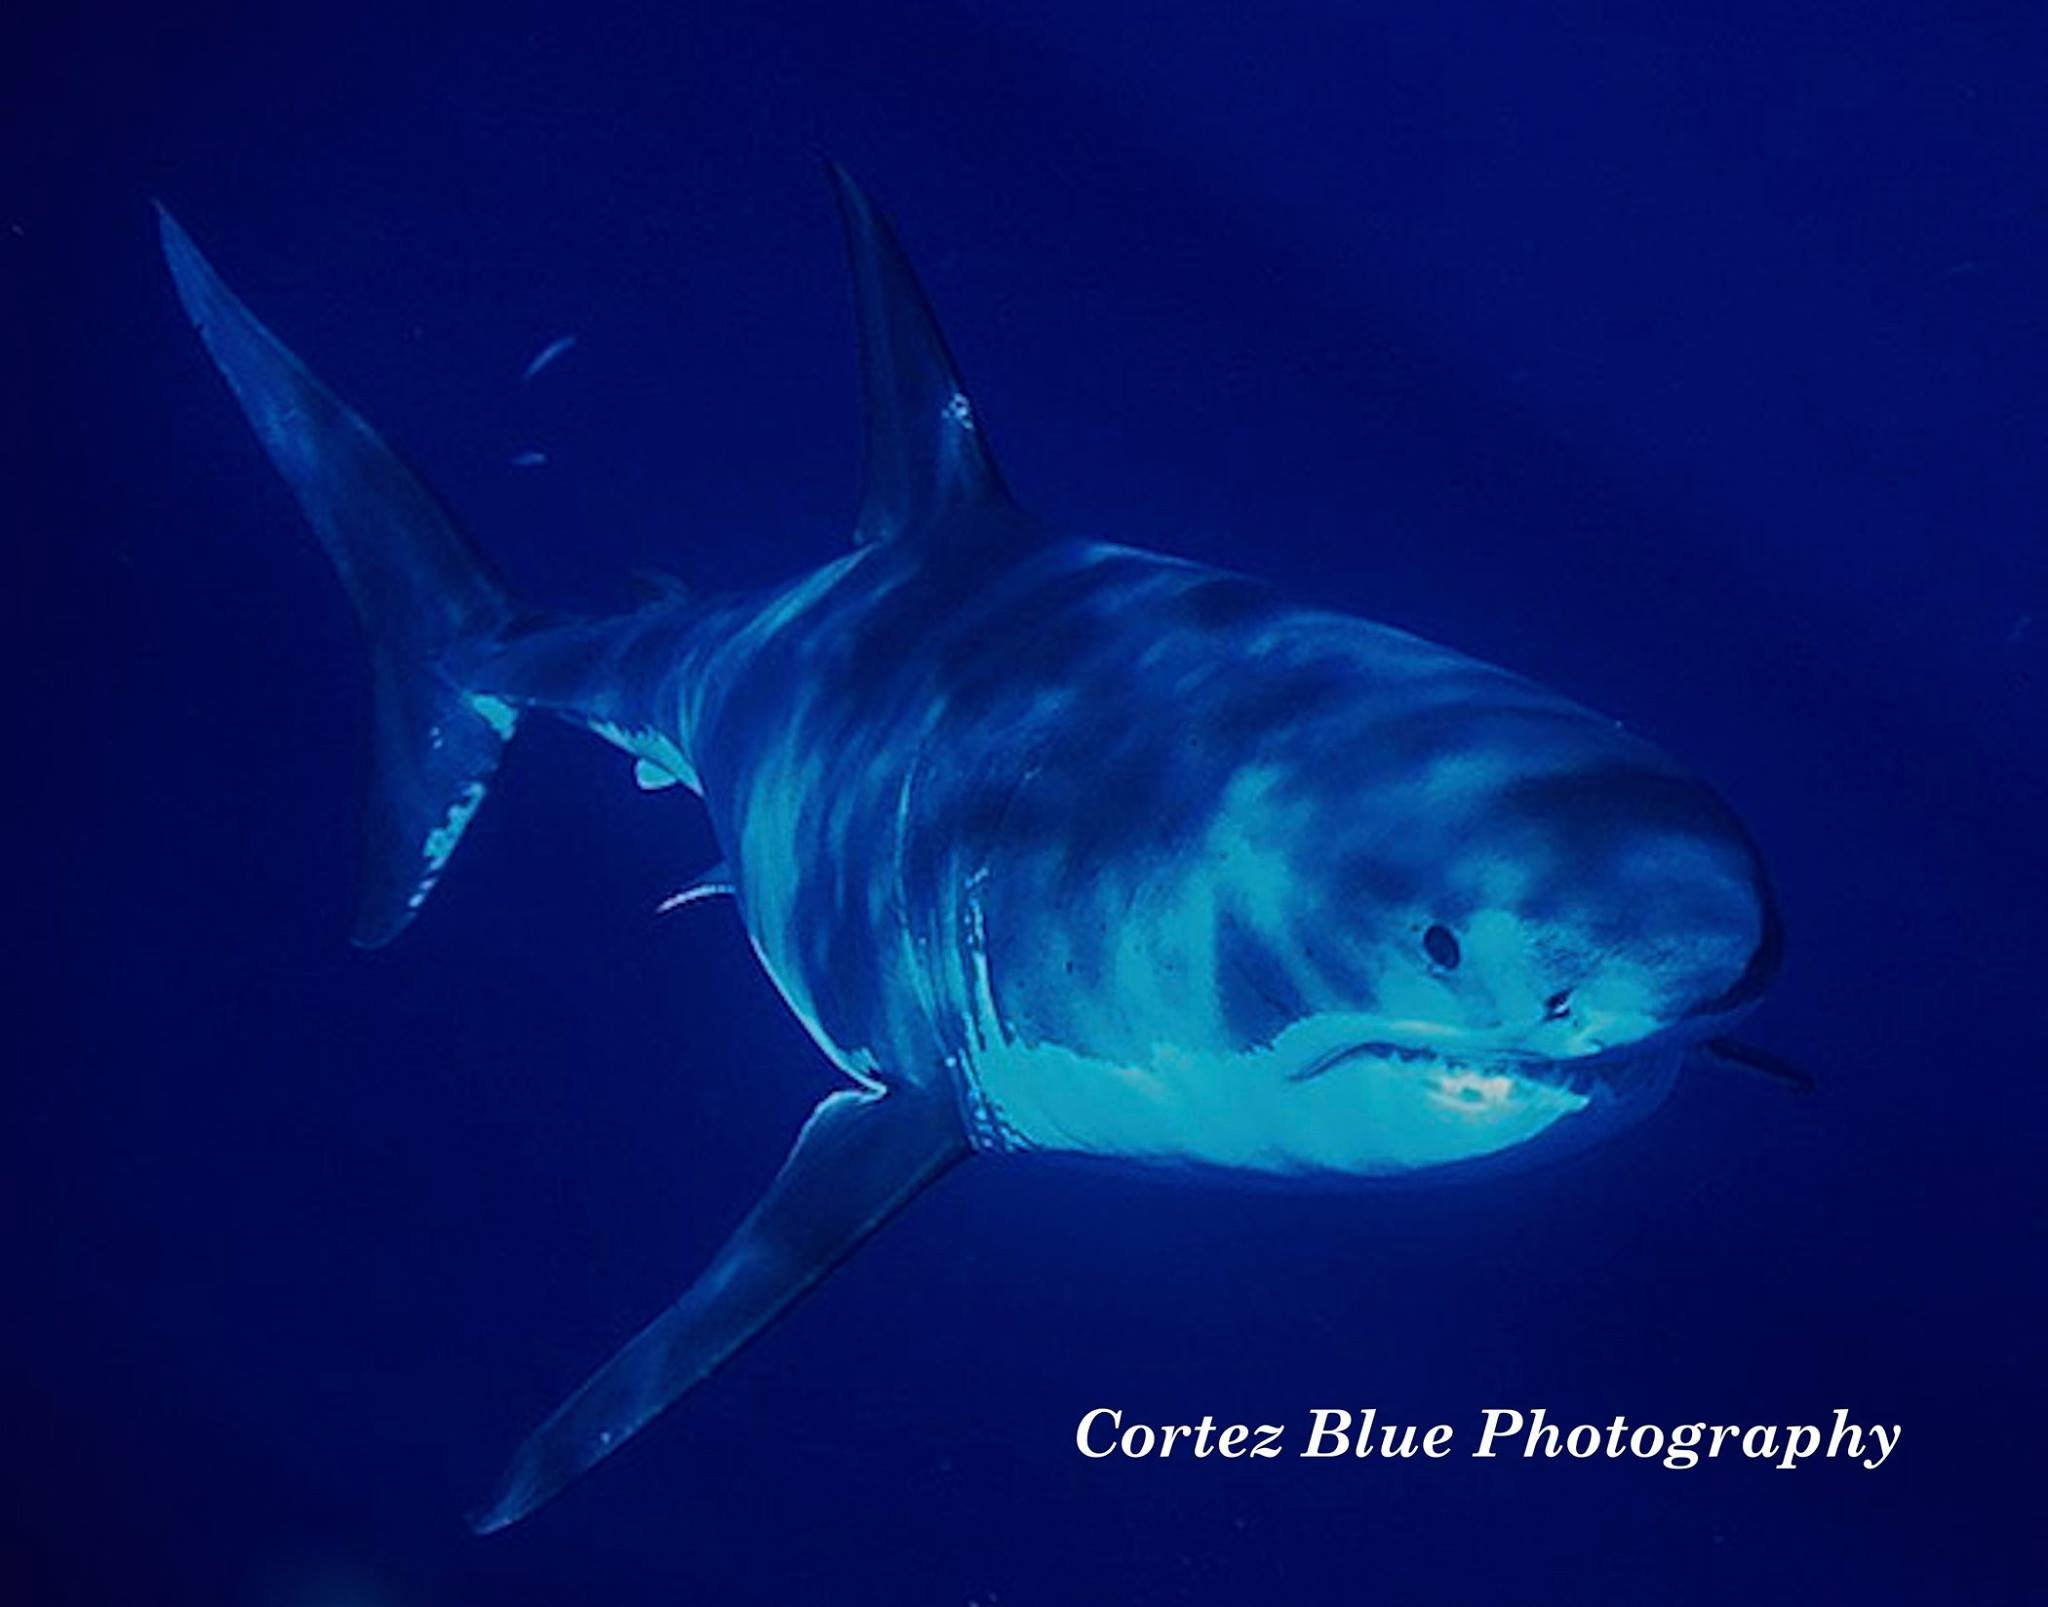 Bonds was diving off Guadalupe Island last year and was surrounded by great white sharks. (Source: Cortez Blue Photography)